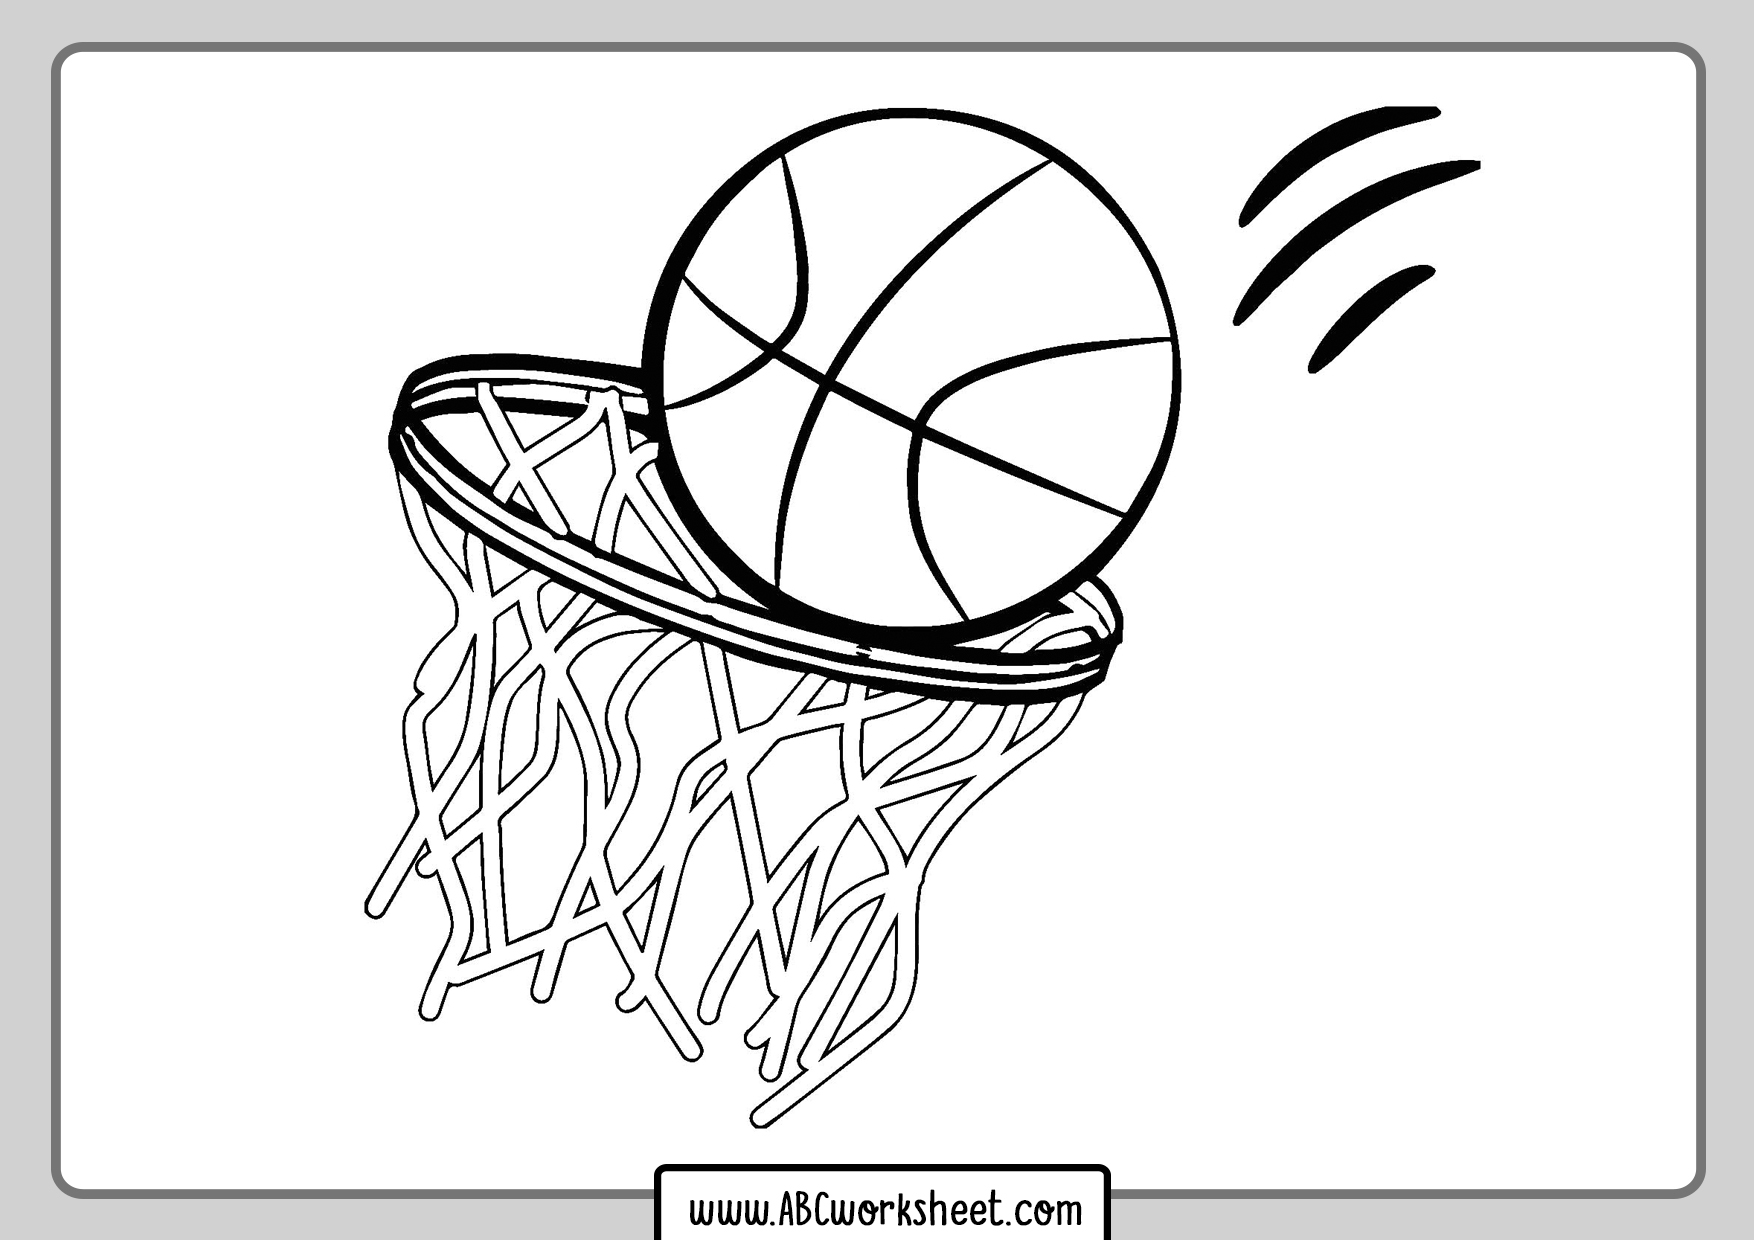 Basketball Ball Coloring Pages